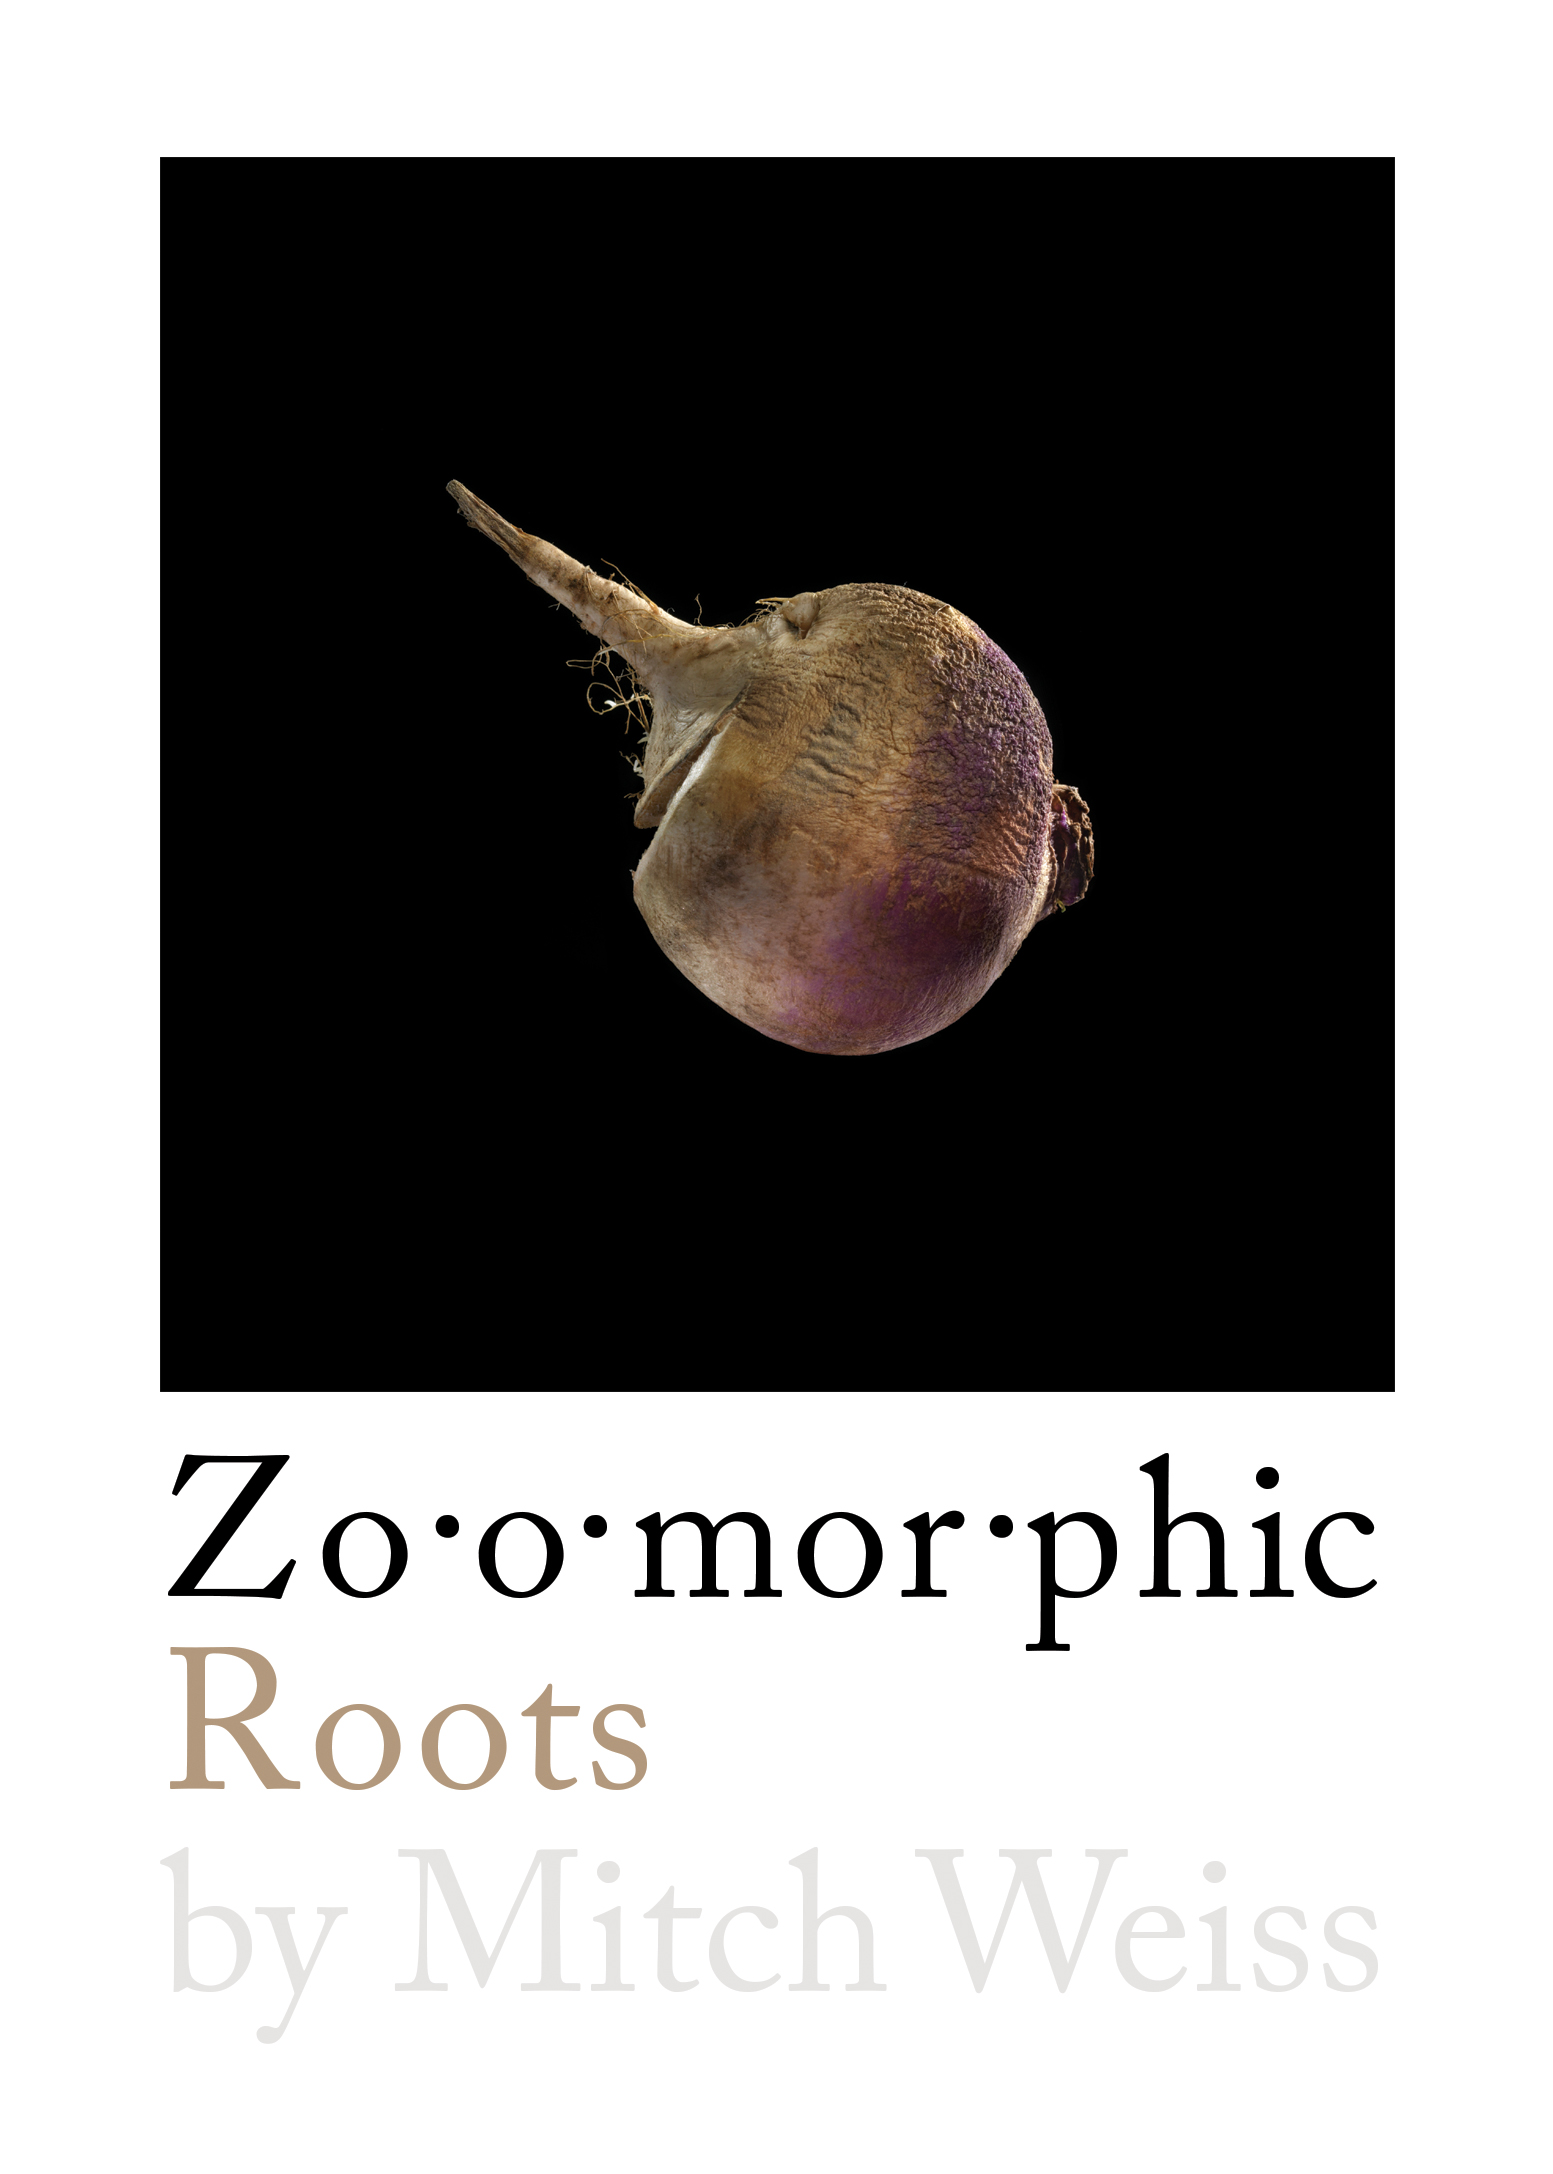 Zoomorphic-Roots-Card